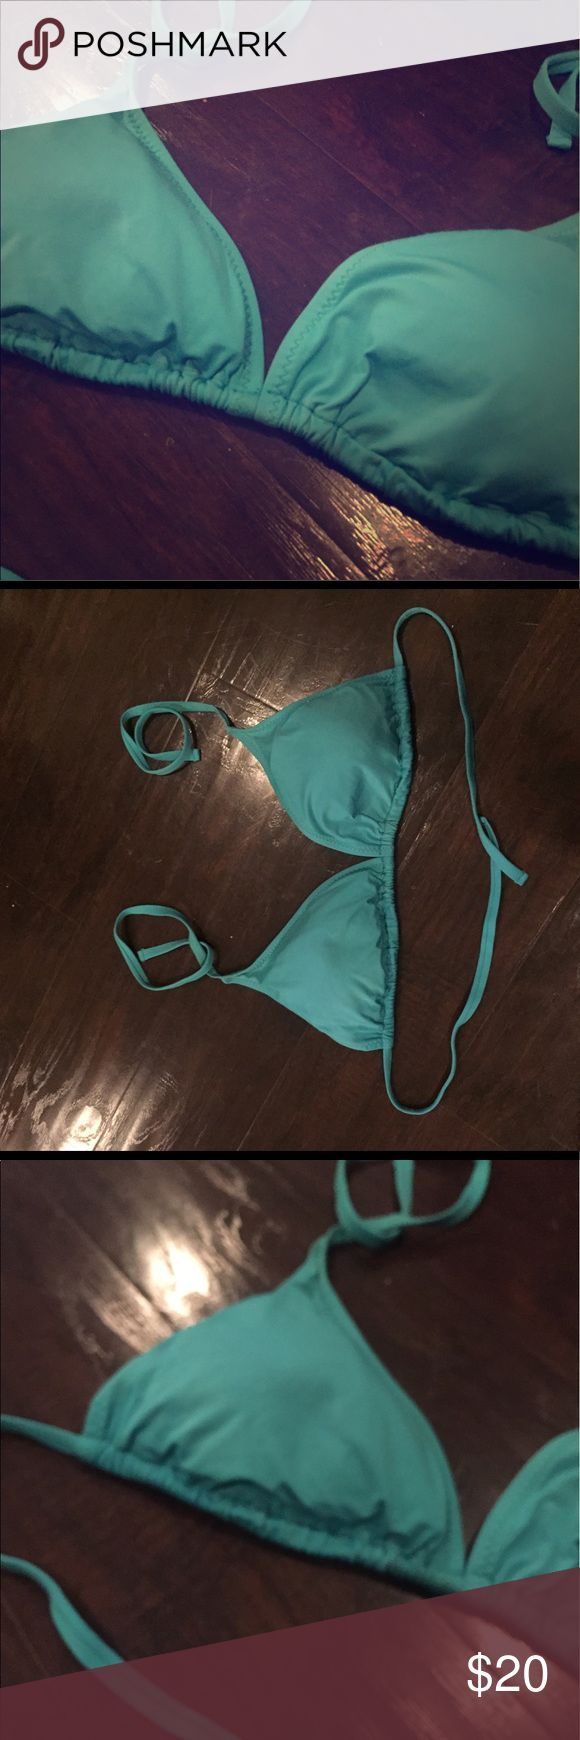 Becca Color Code Triangle Bikini Top A classic, solid color sliding triangle bikini top. Becca bikini top in teal in size D. Lightly worn and in great condition. BECCA Swim Bikinis